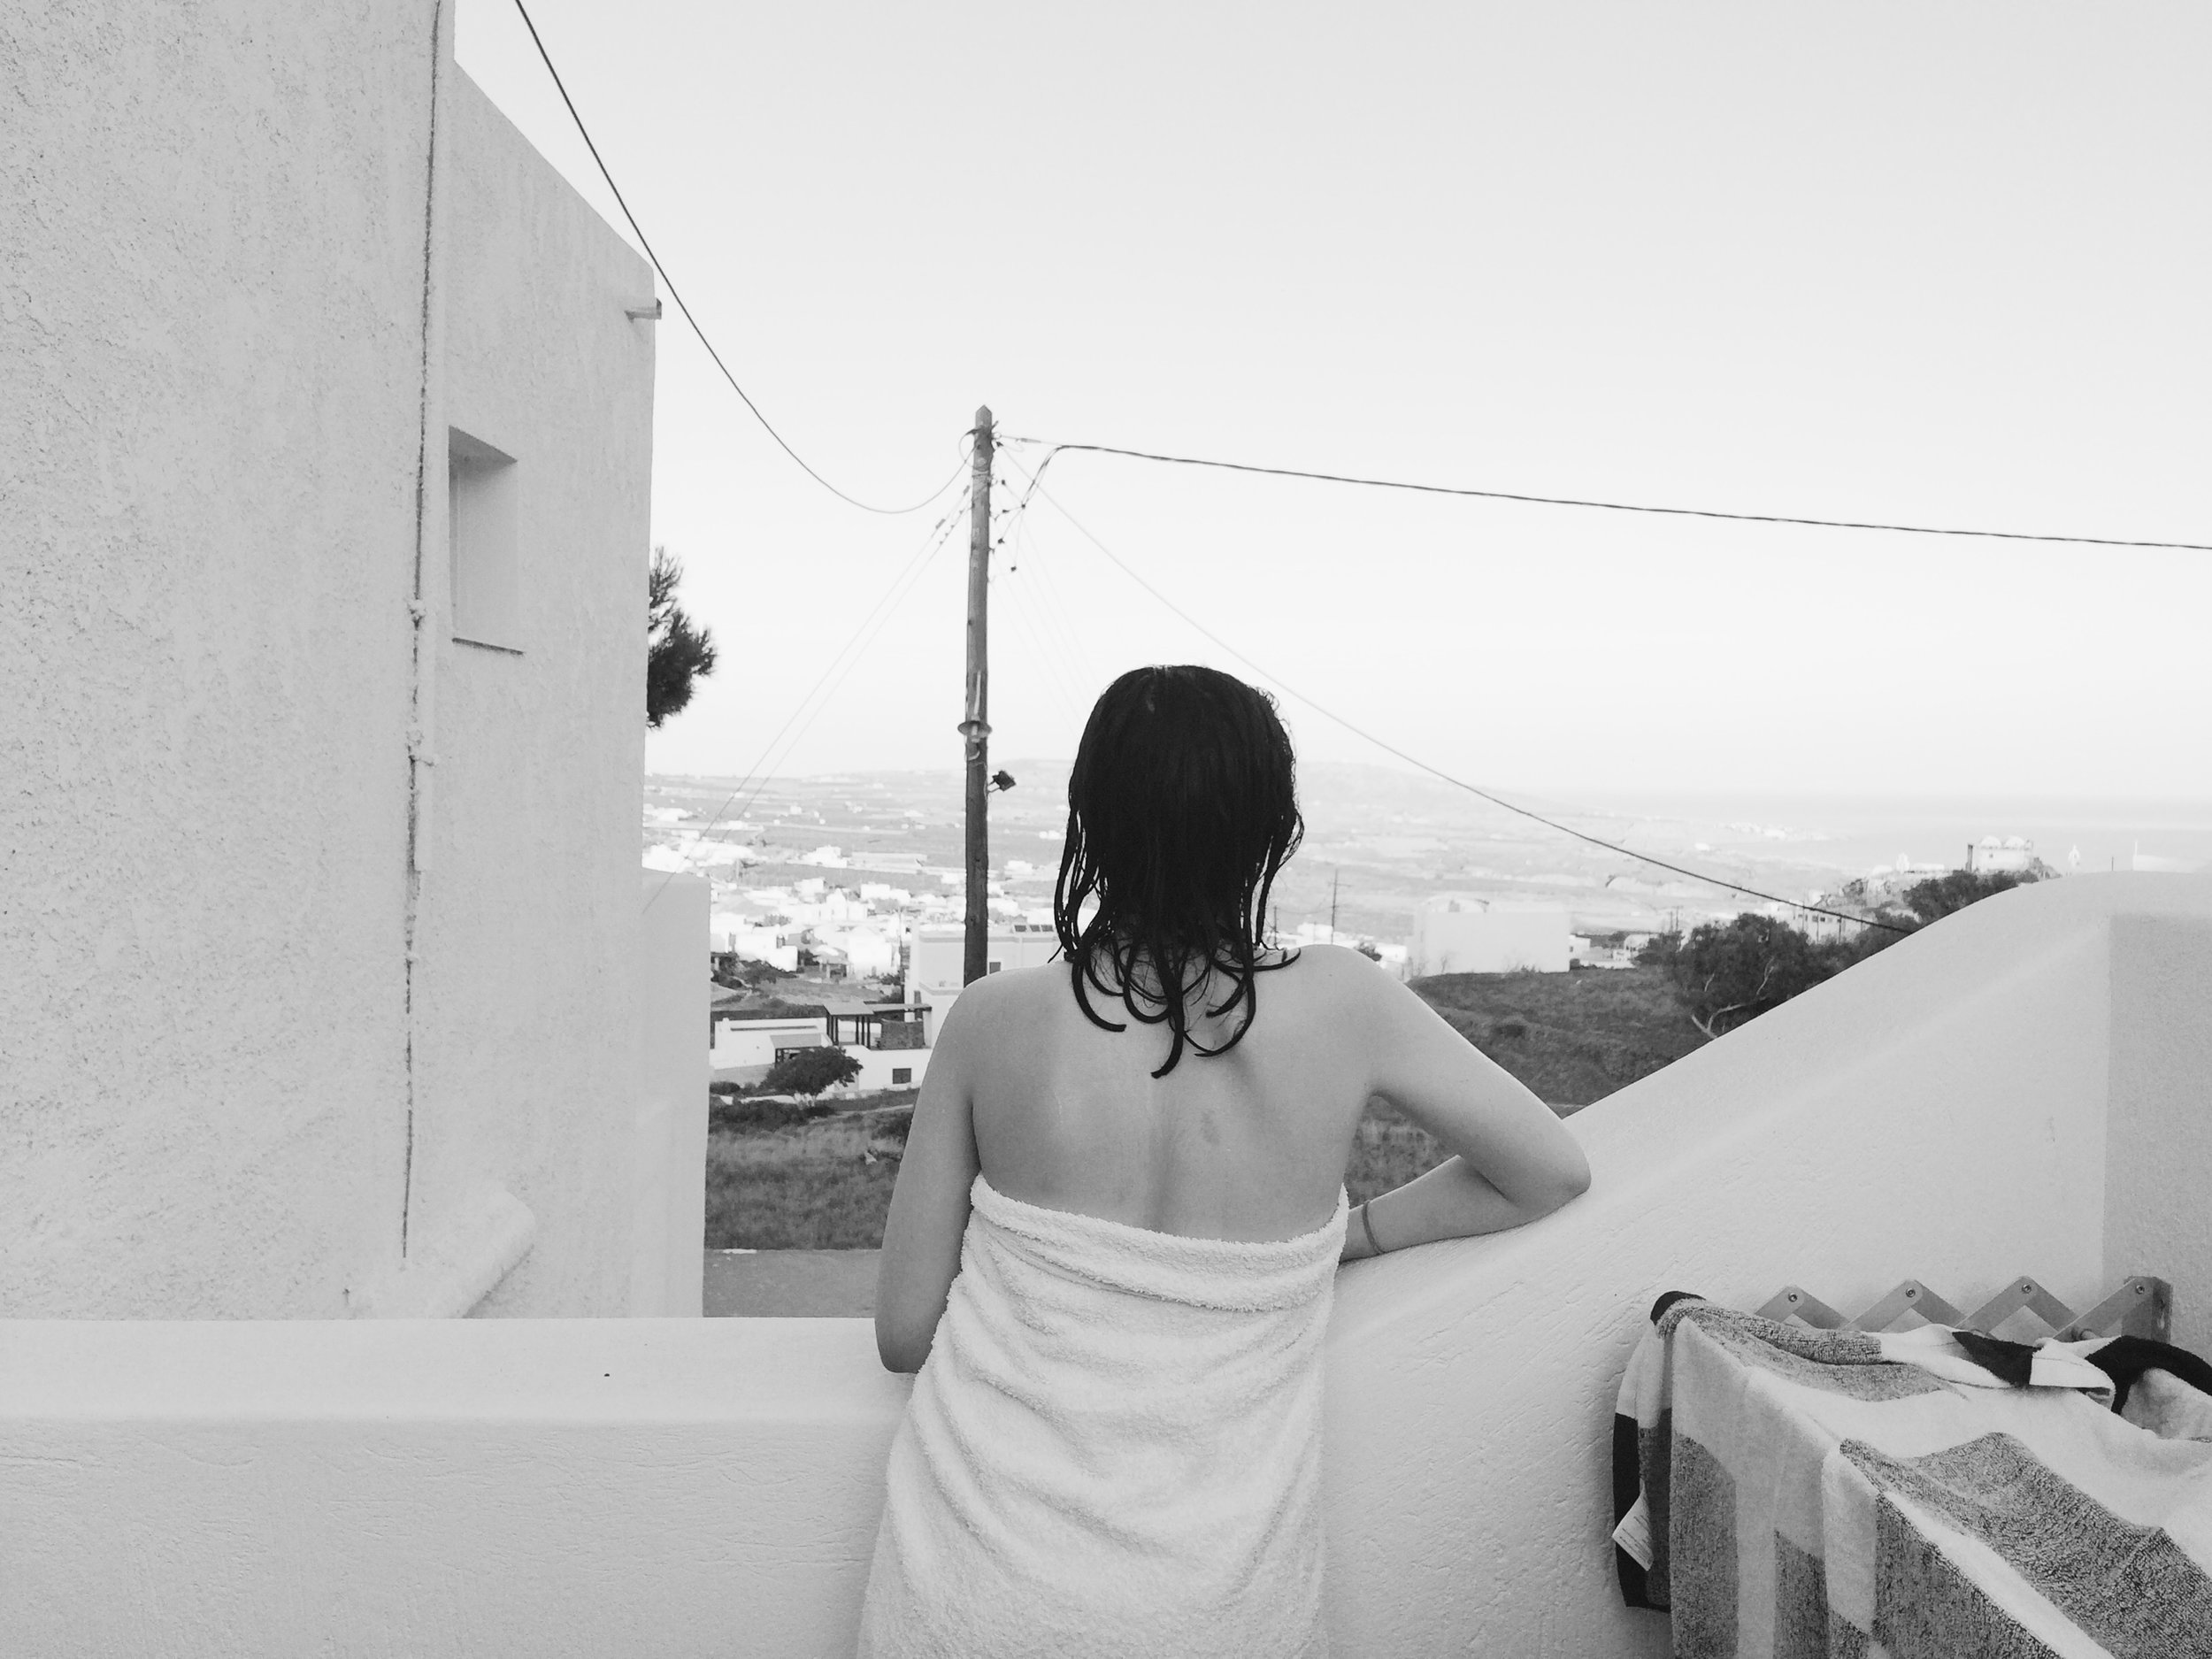 Observing Santorini , Anafi, the Cyclades, 2016